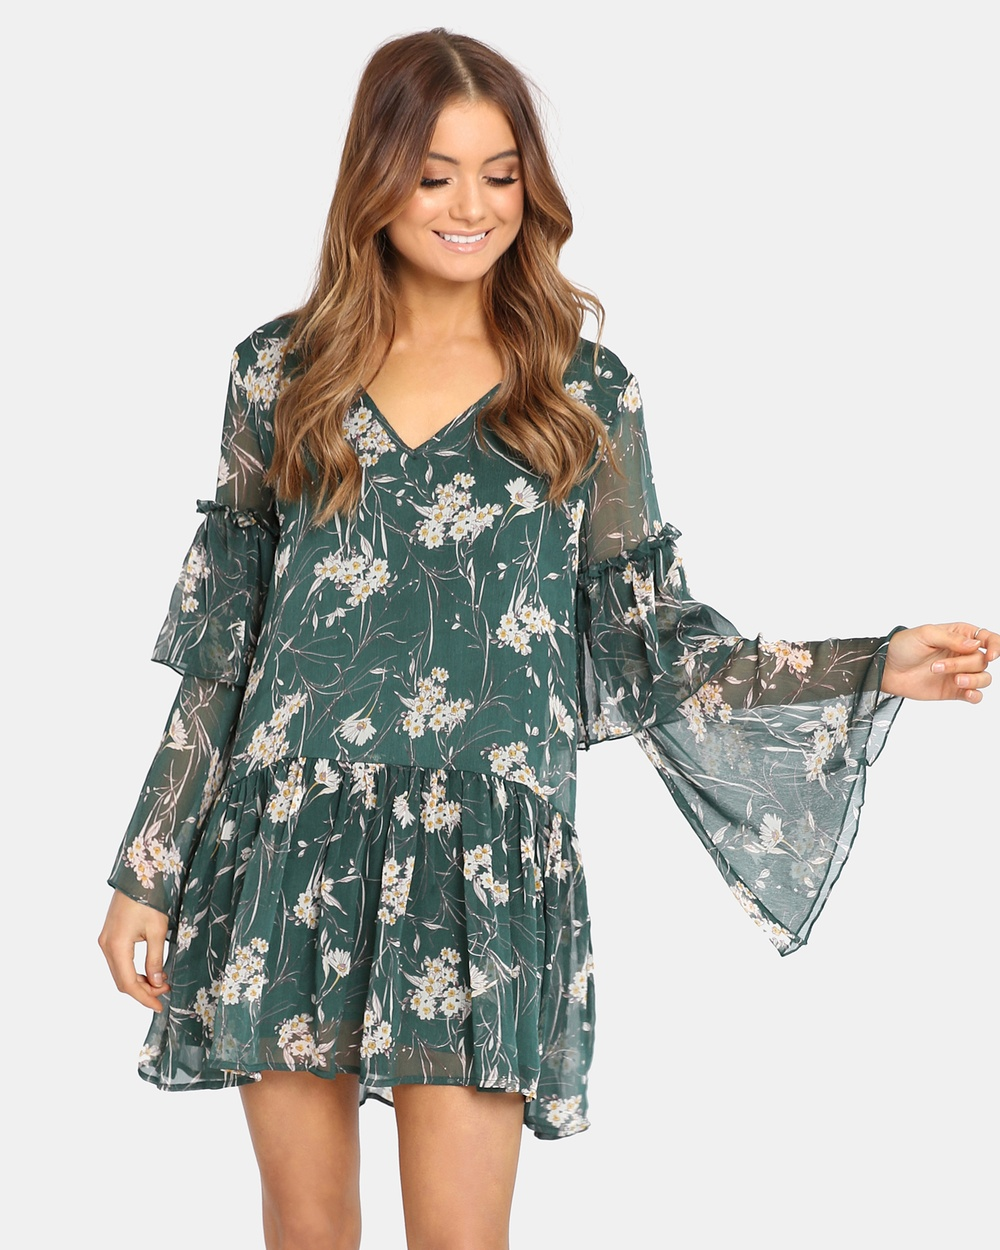 Madison Square Eden Dress Printed Dresses Khaki Eden Dress